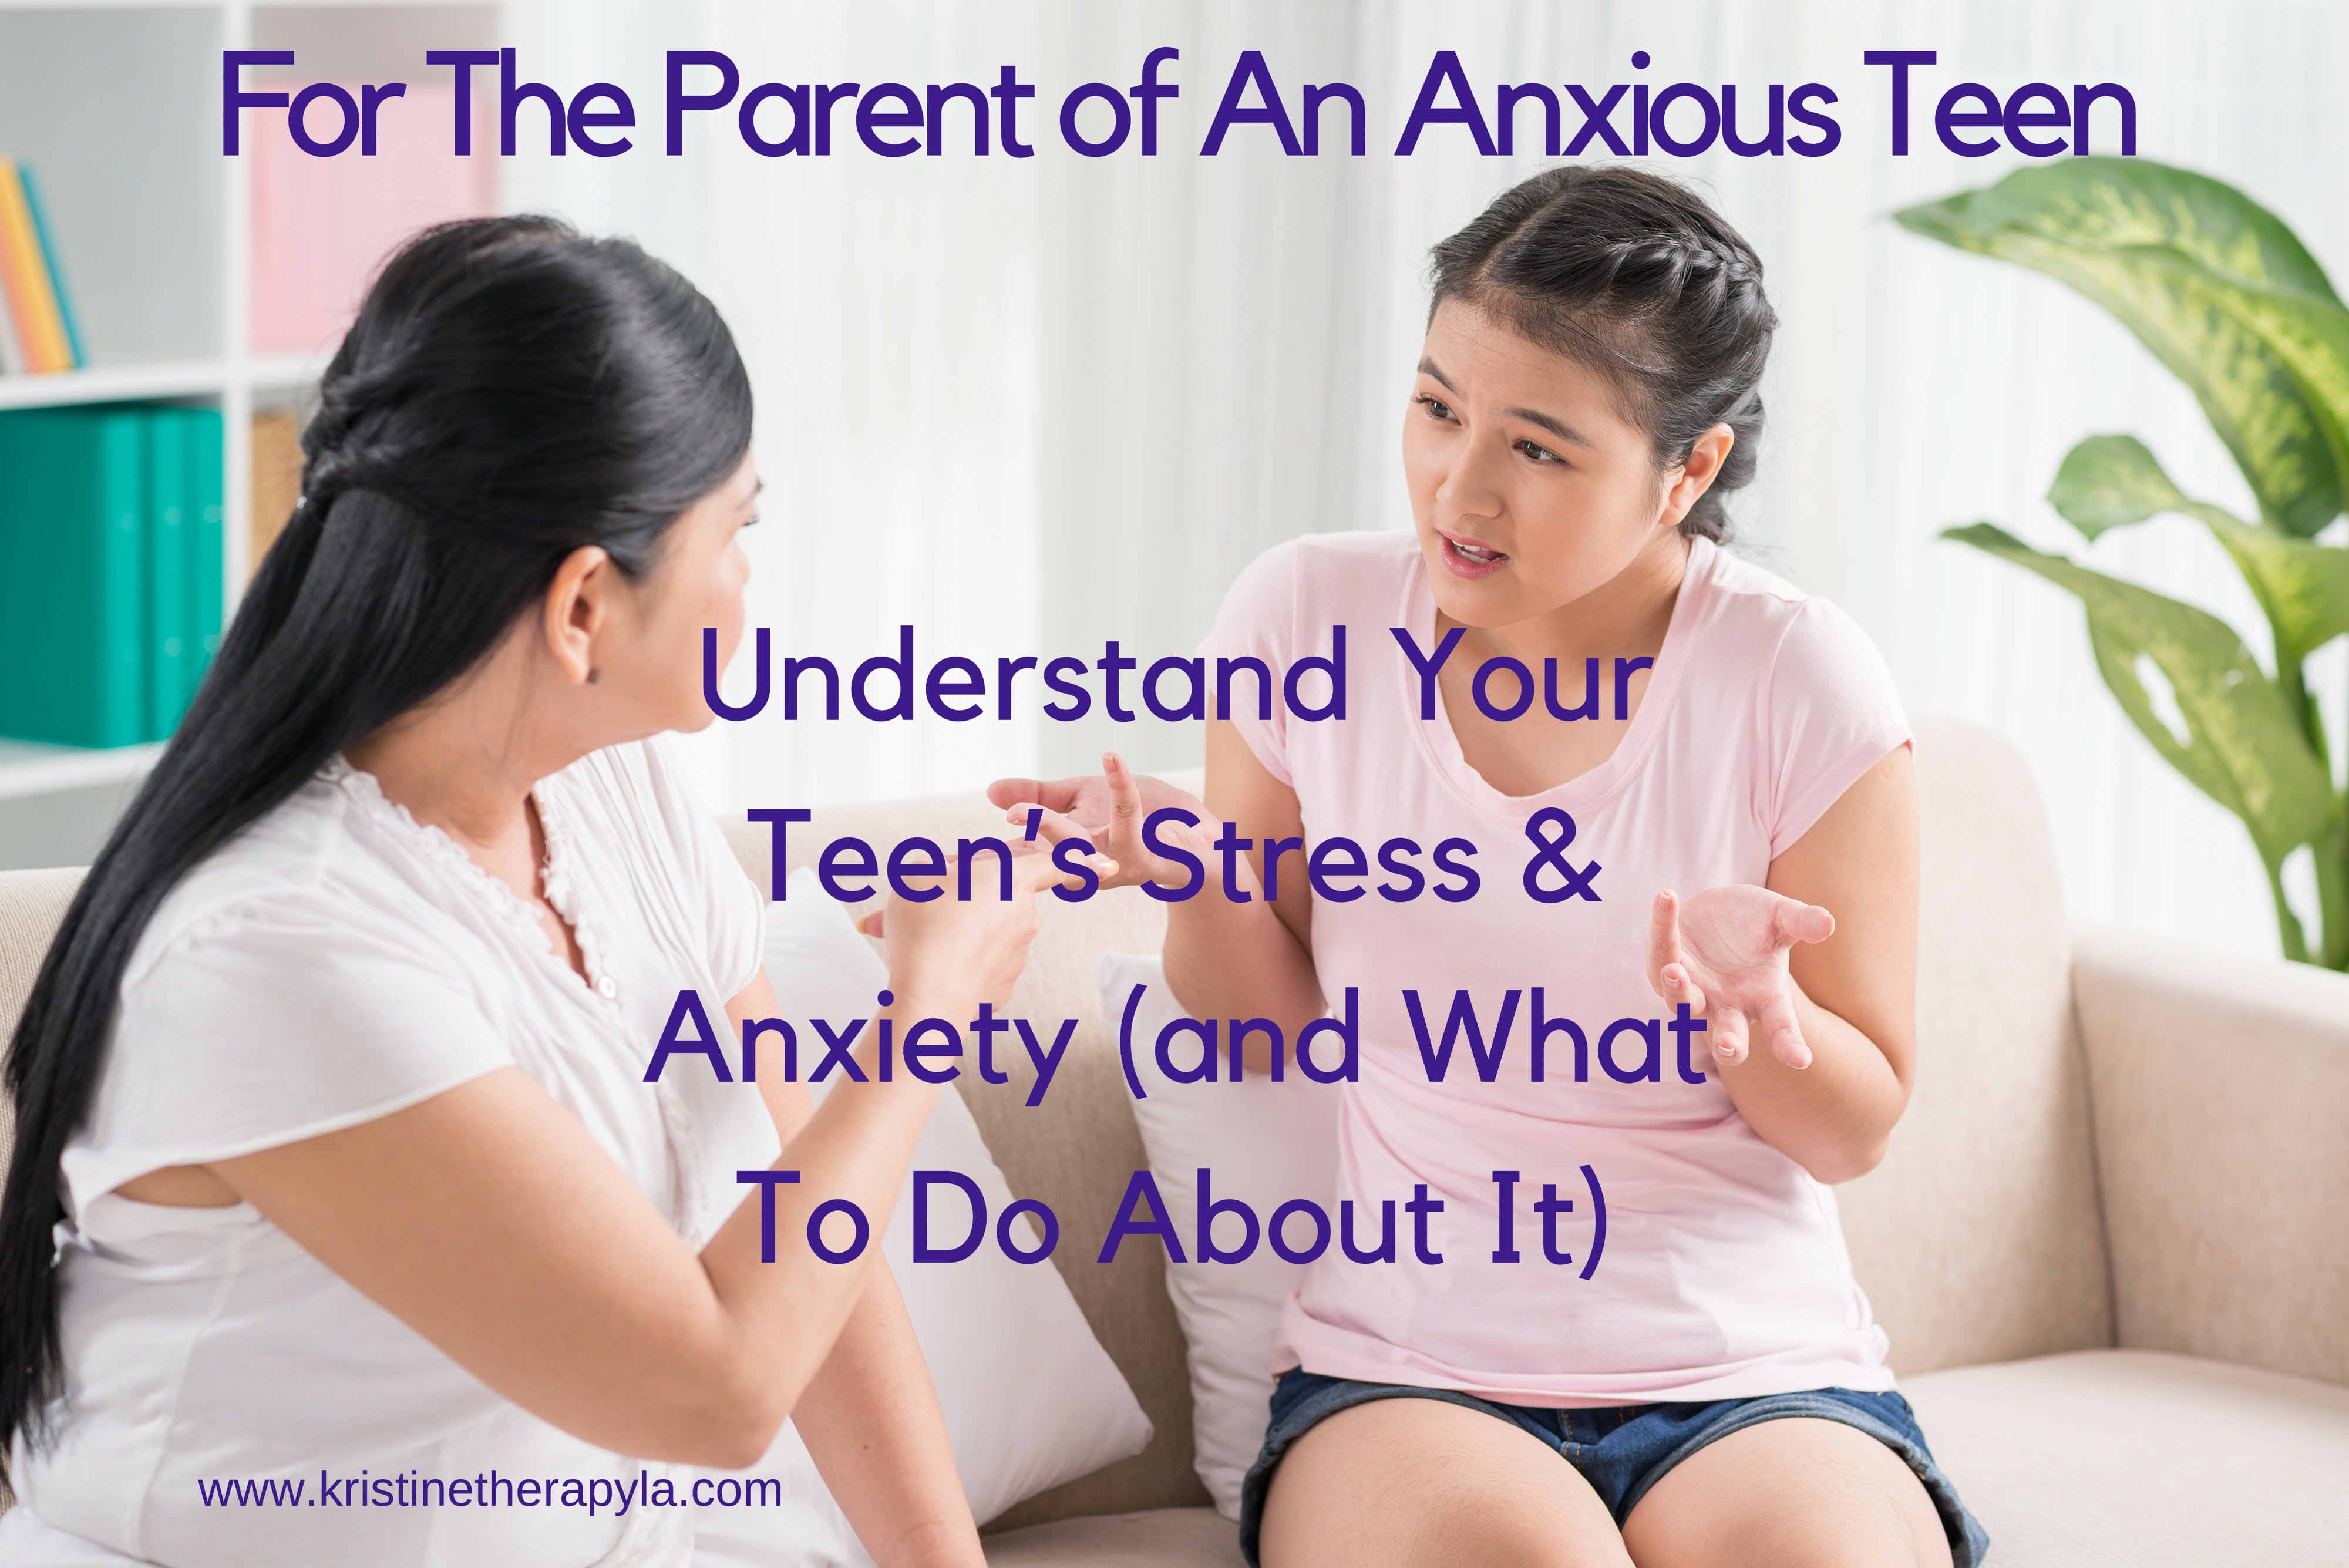 For The Parent of An Anxious Teen